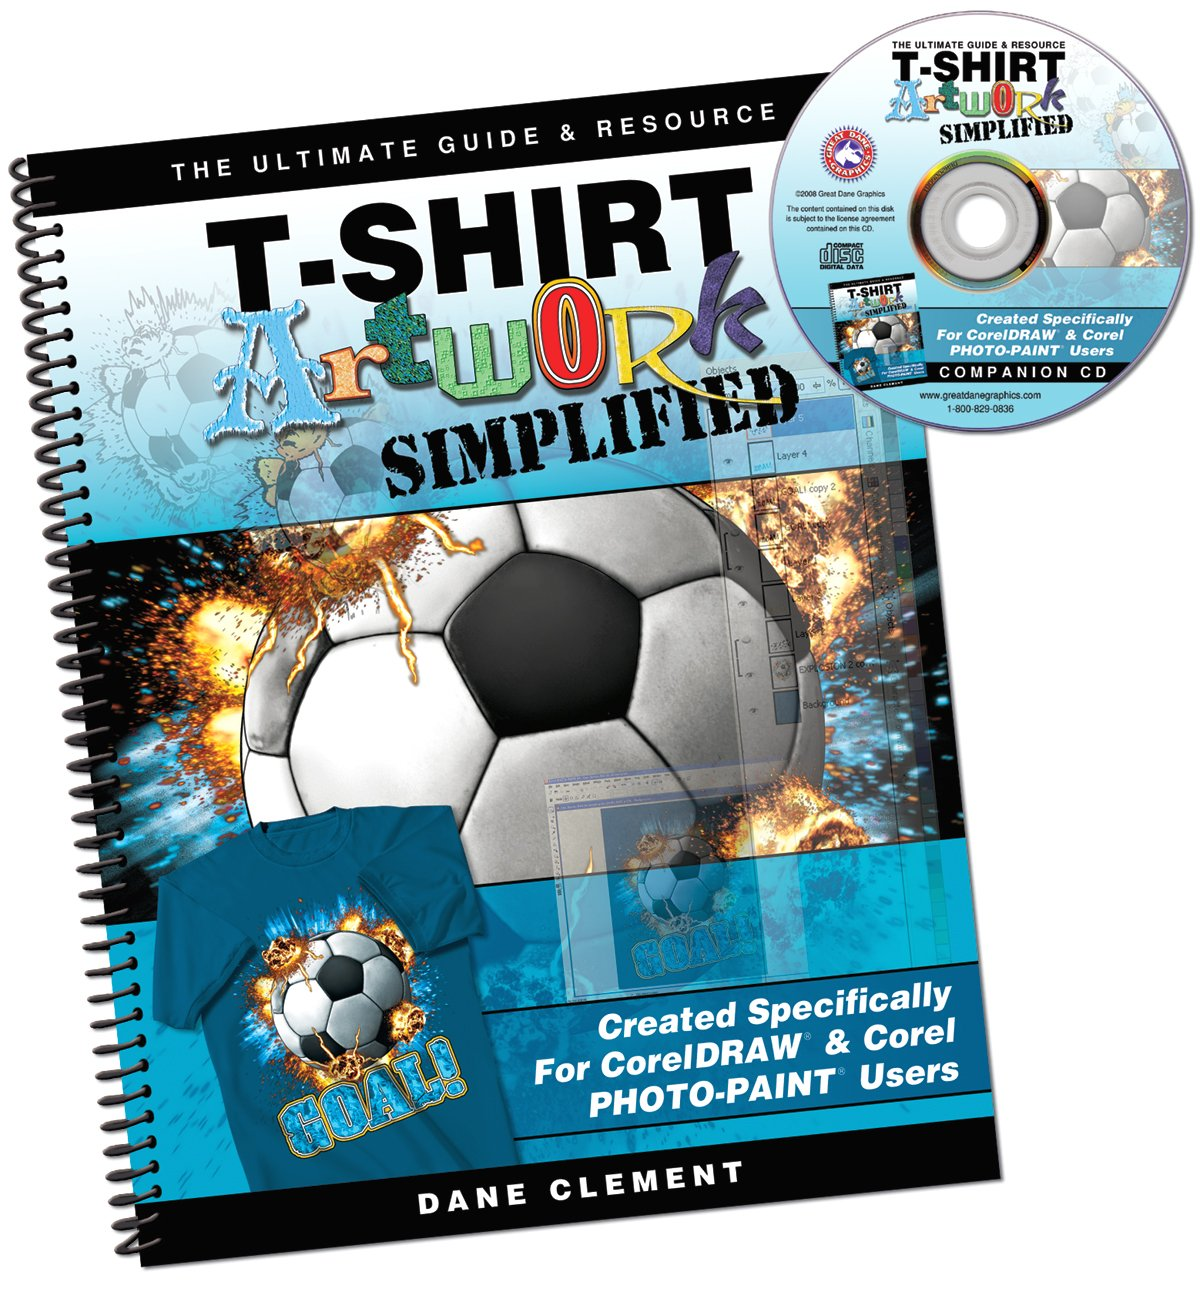 T shirt artwork simplified for coreldraw photo paint users dane t shirt artwork simplified for coreldraw photo paint users dane clement 9780982093511 amazon books baditri Image collections